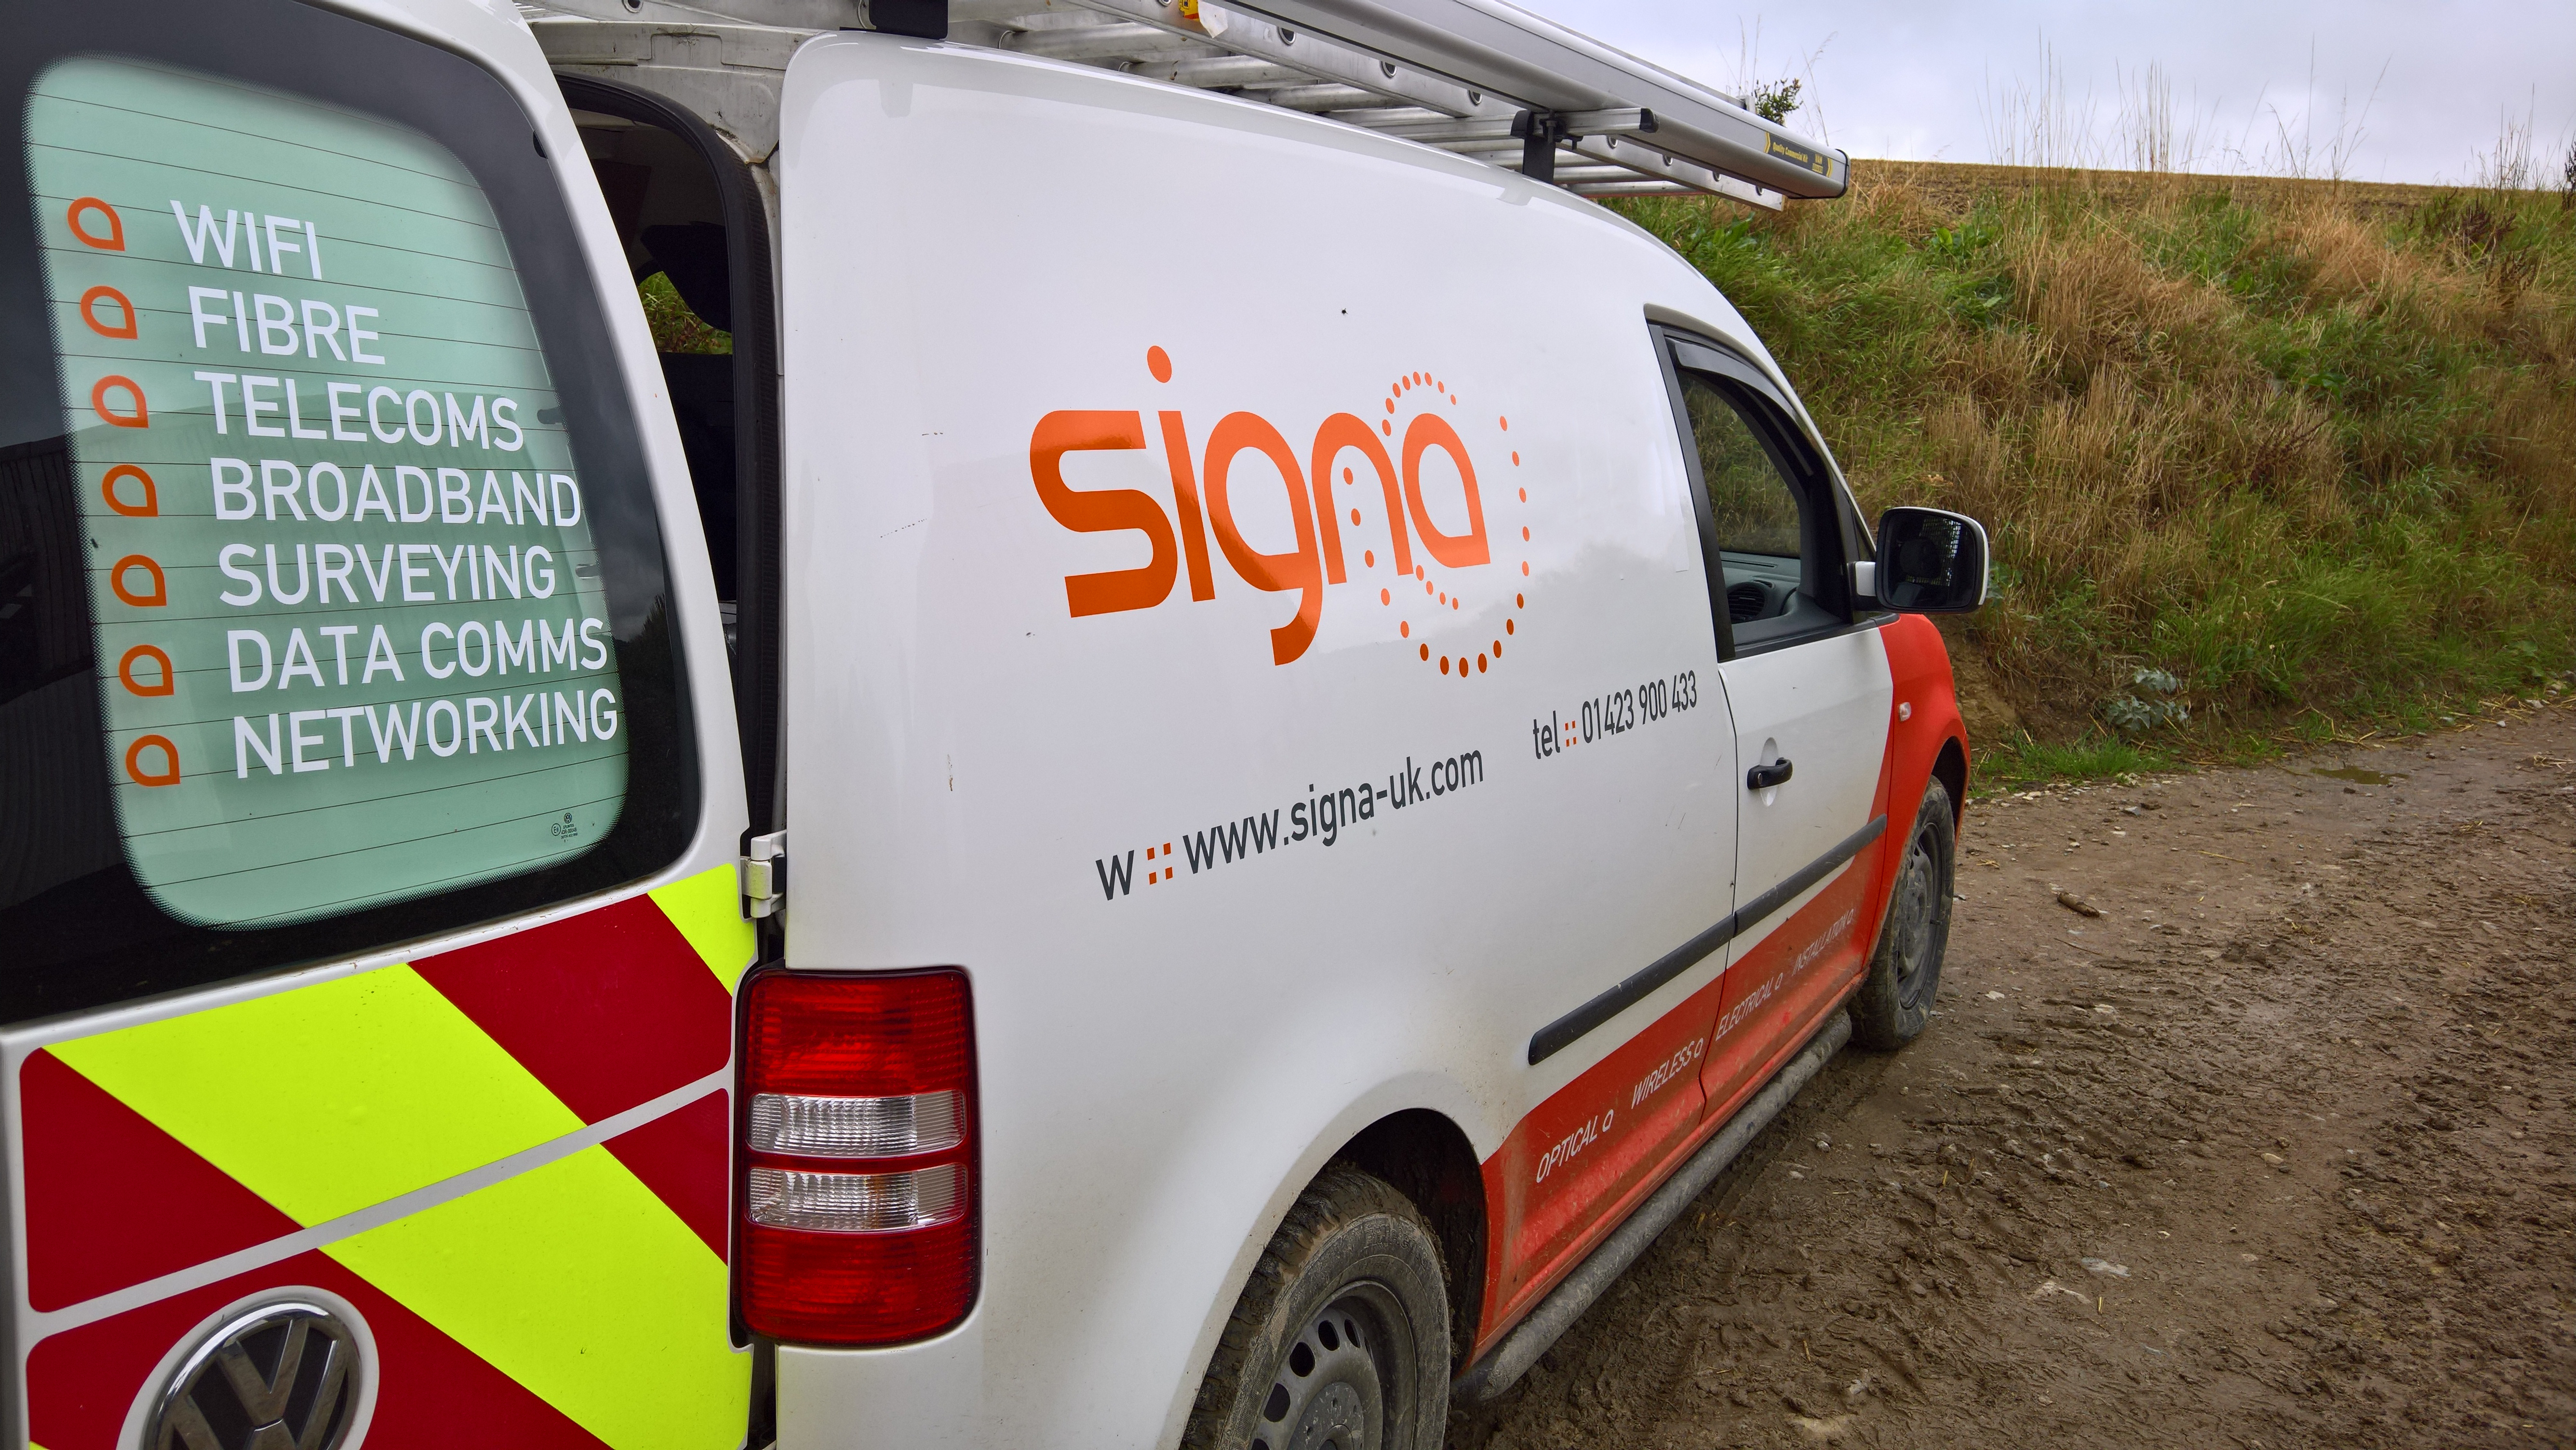 Signa Van on the Road